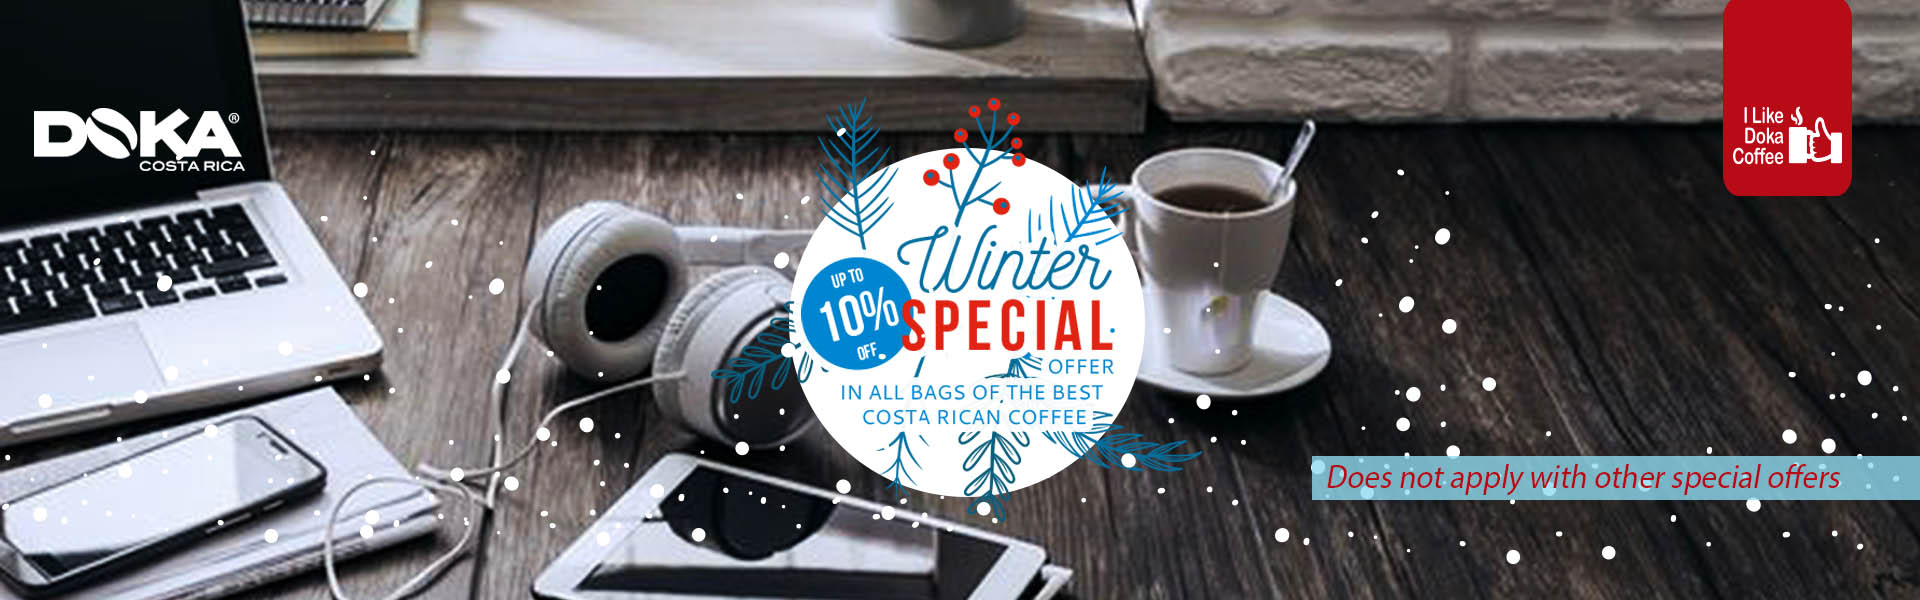 Special winter offer 2018